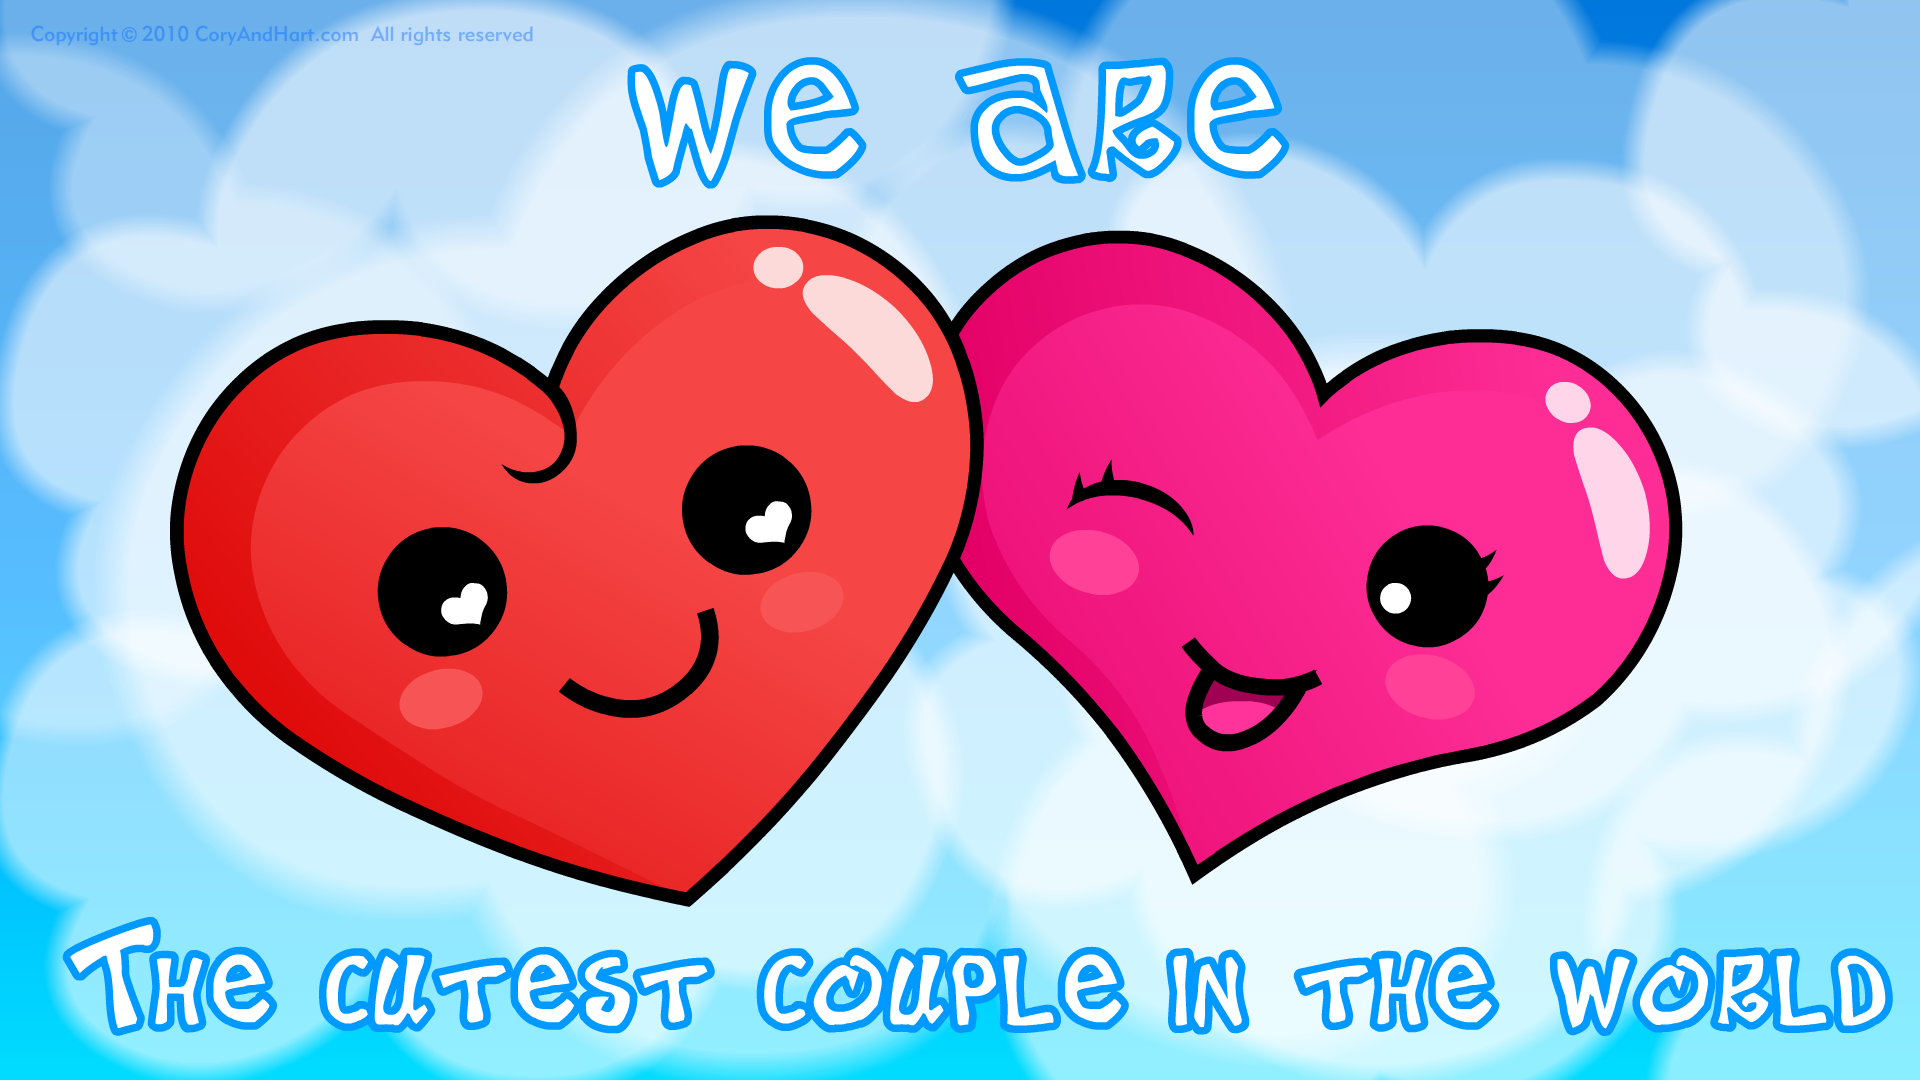 10 Top Cute Love Heart Wallpapers For Mobile Full Hd 1920: Cute-i-love-you-wallpaper-for-mobile-9